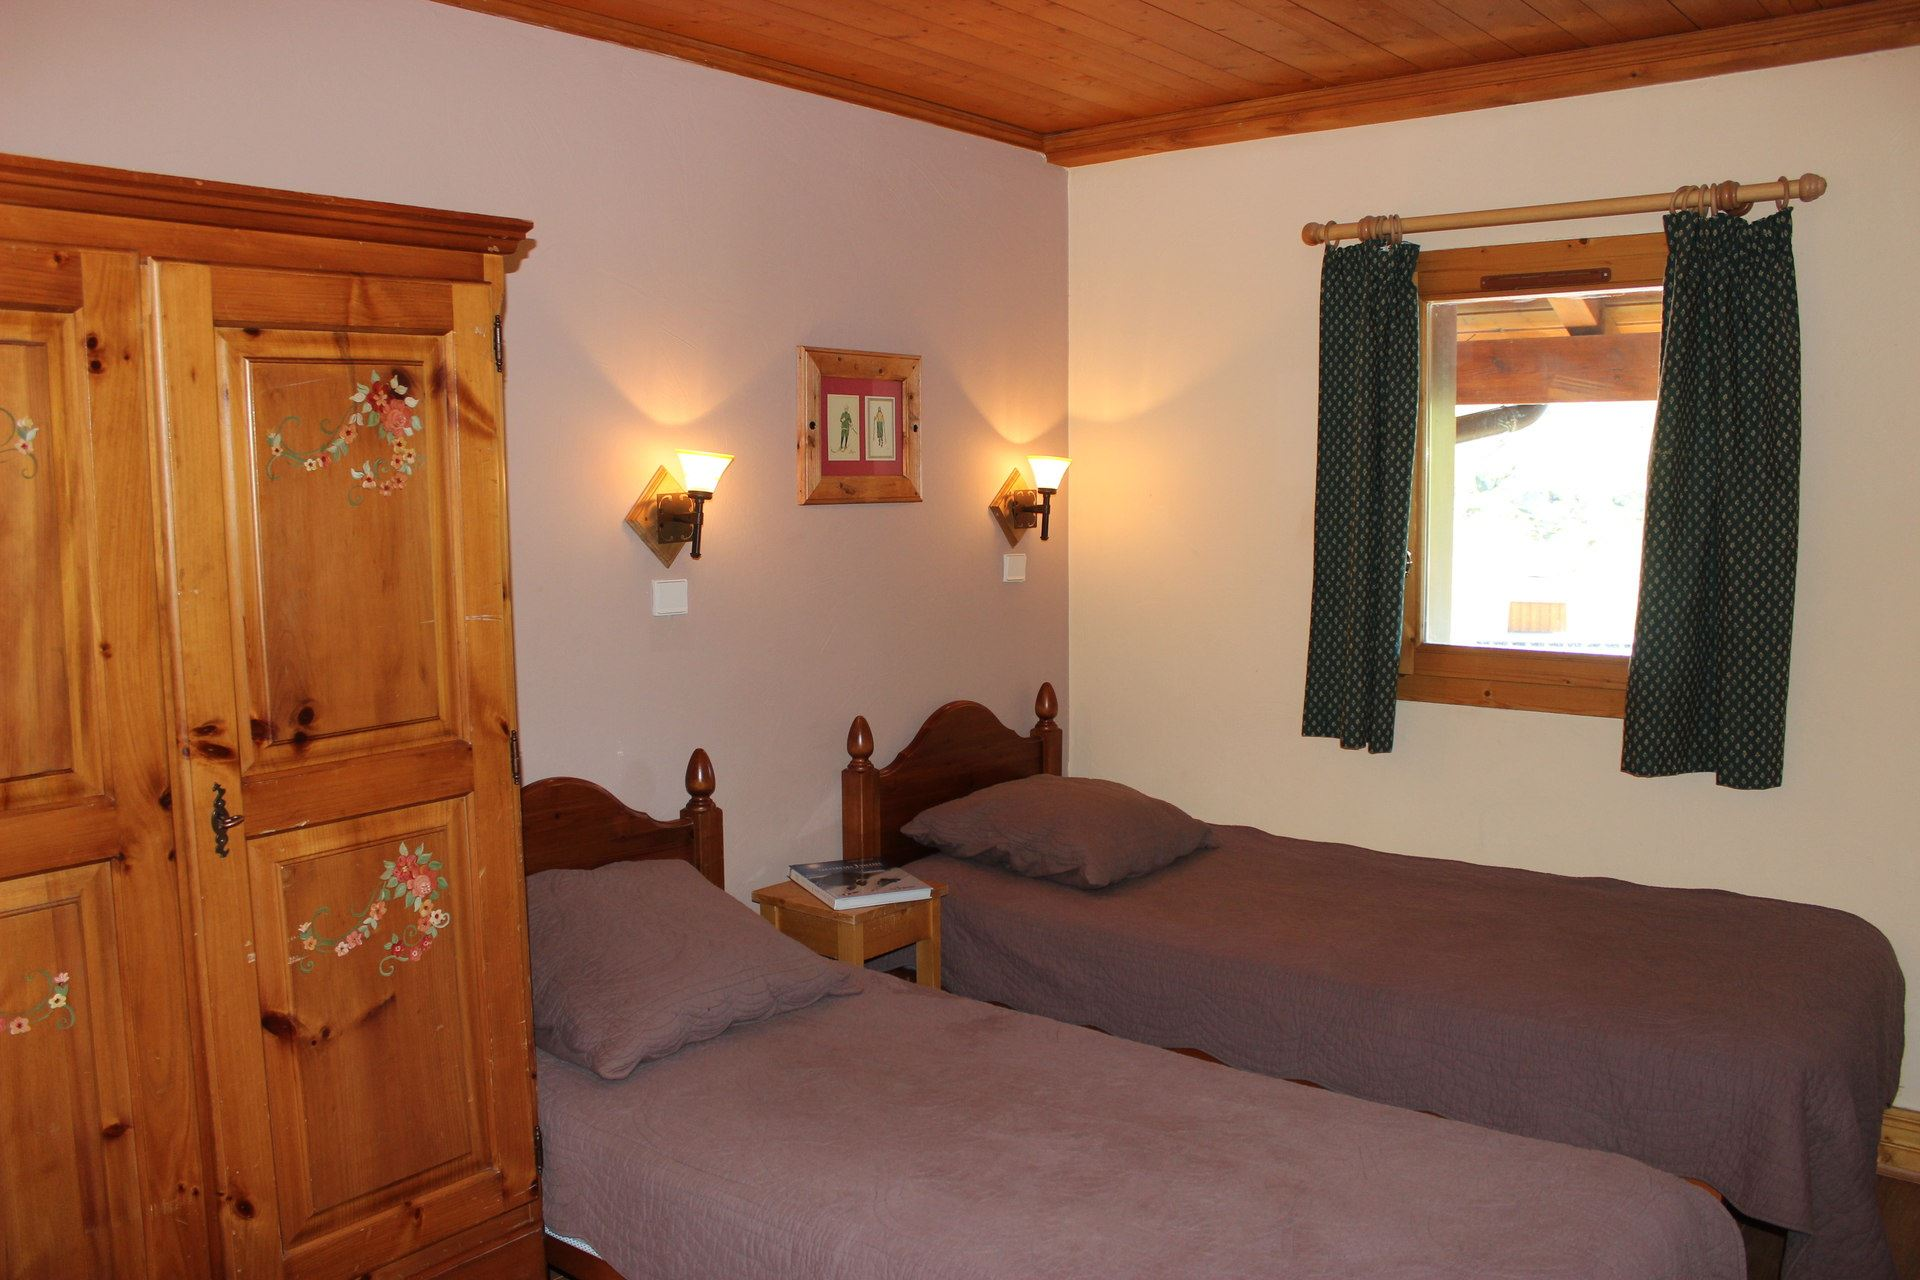 CHALET SELAOU 32 / APARTMENT 5 ROOMS TRIPLEX 10 PERSONS - 4 SILVER SNOWFLAKES - VTI